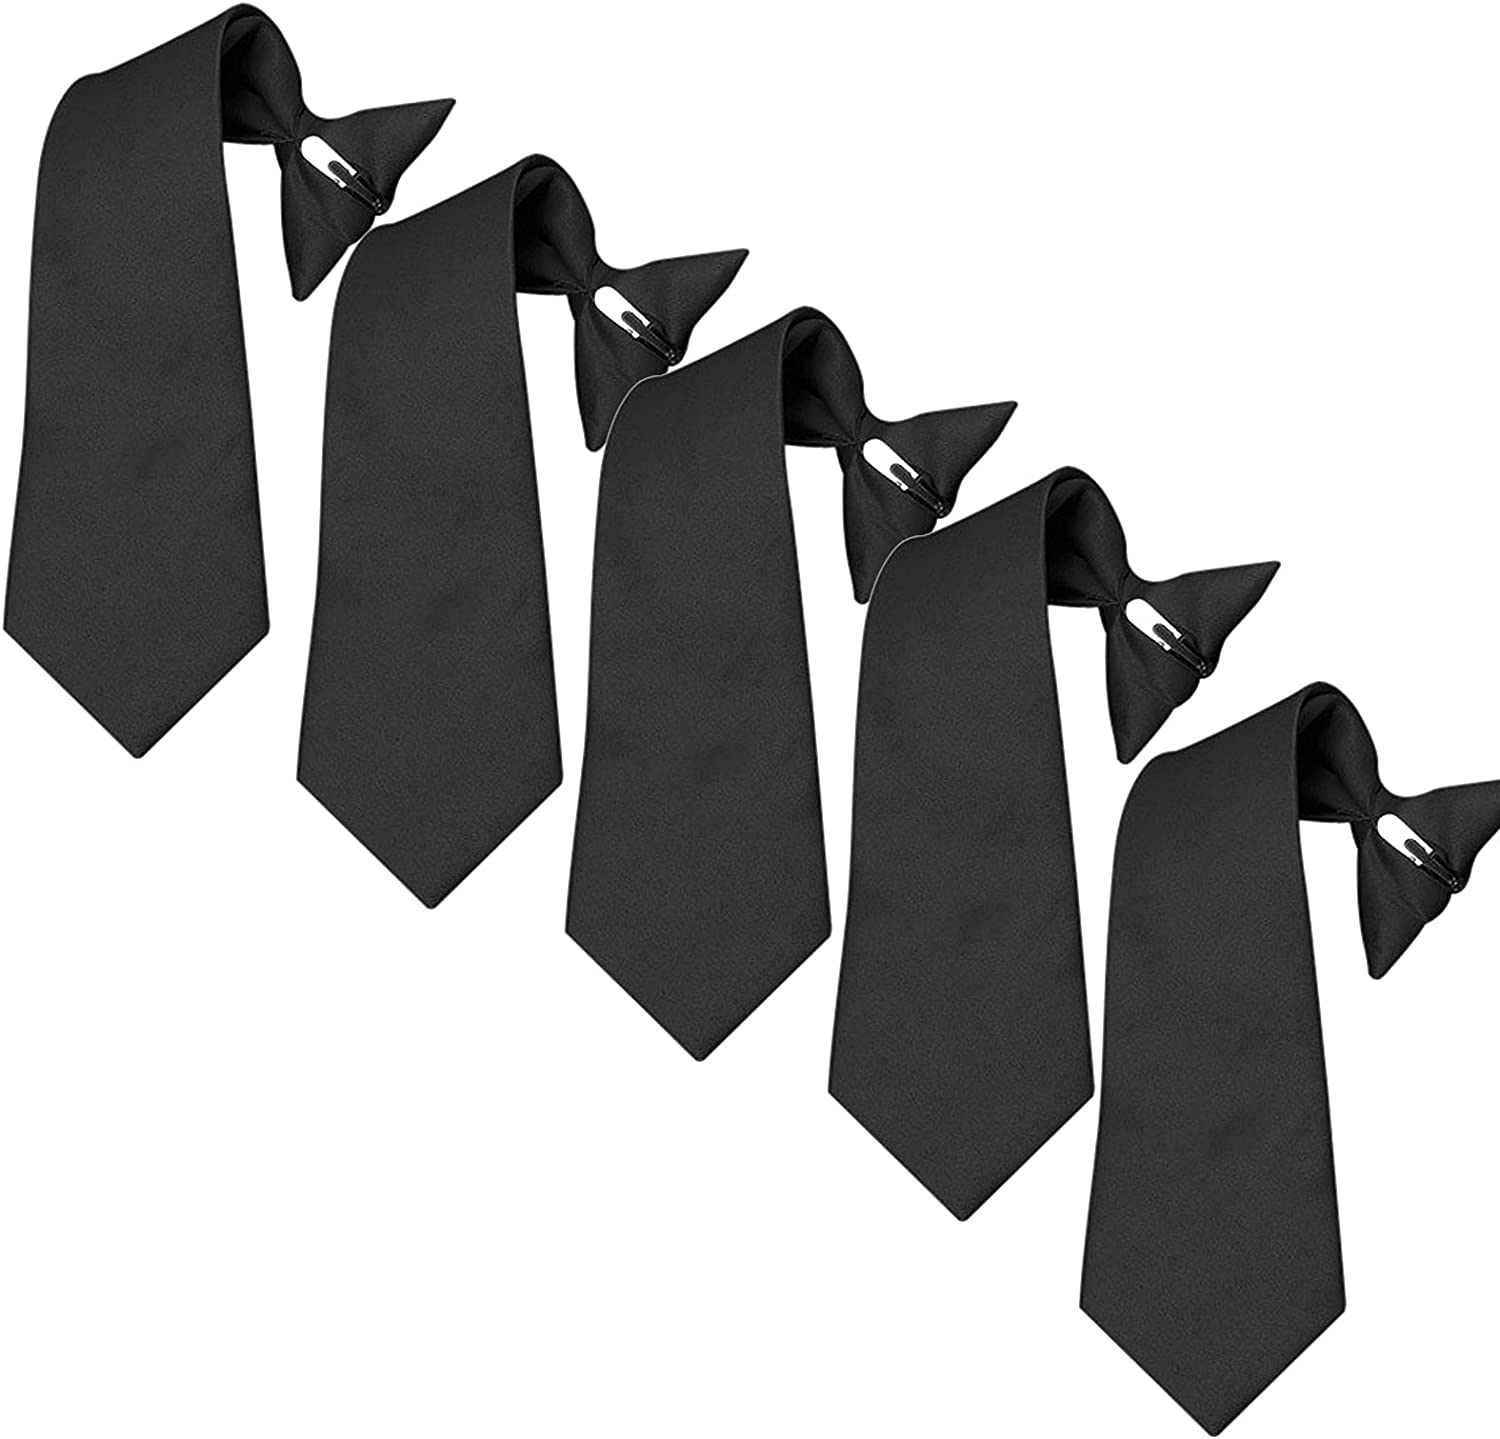 Mens Clip On Ties 5 PK Pre-tied Clip-on Ties for Police Security Guard School